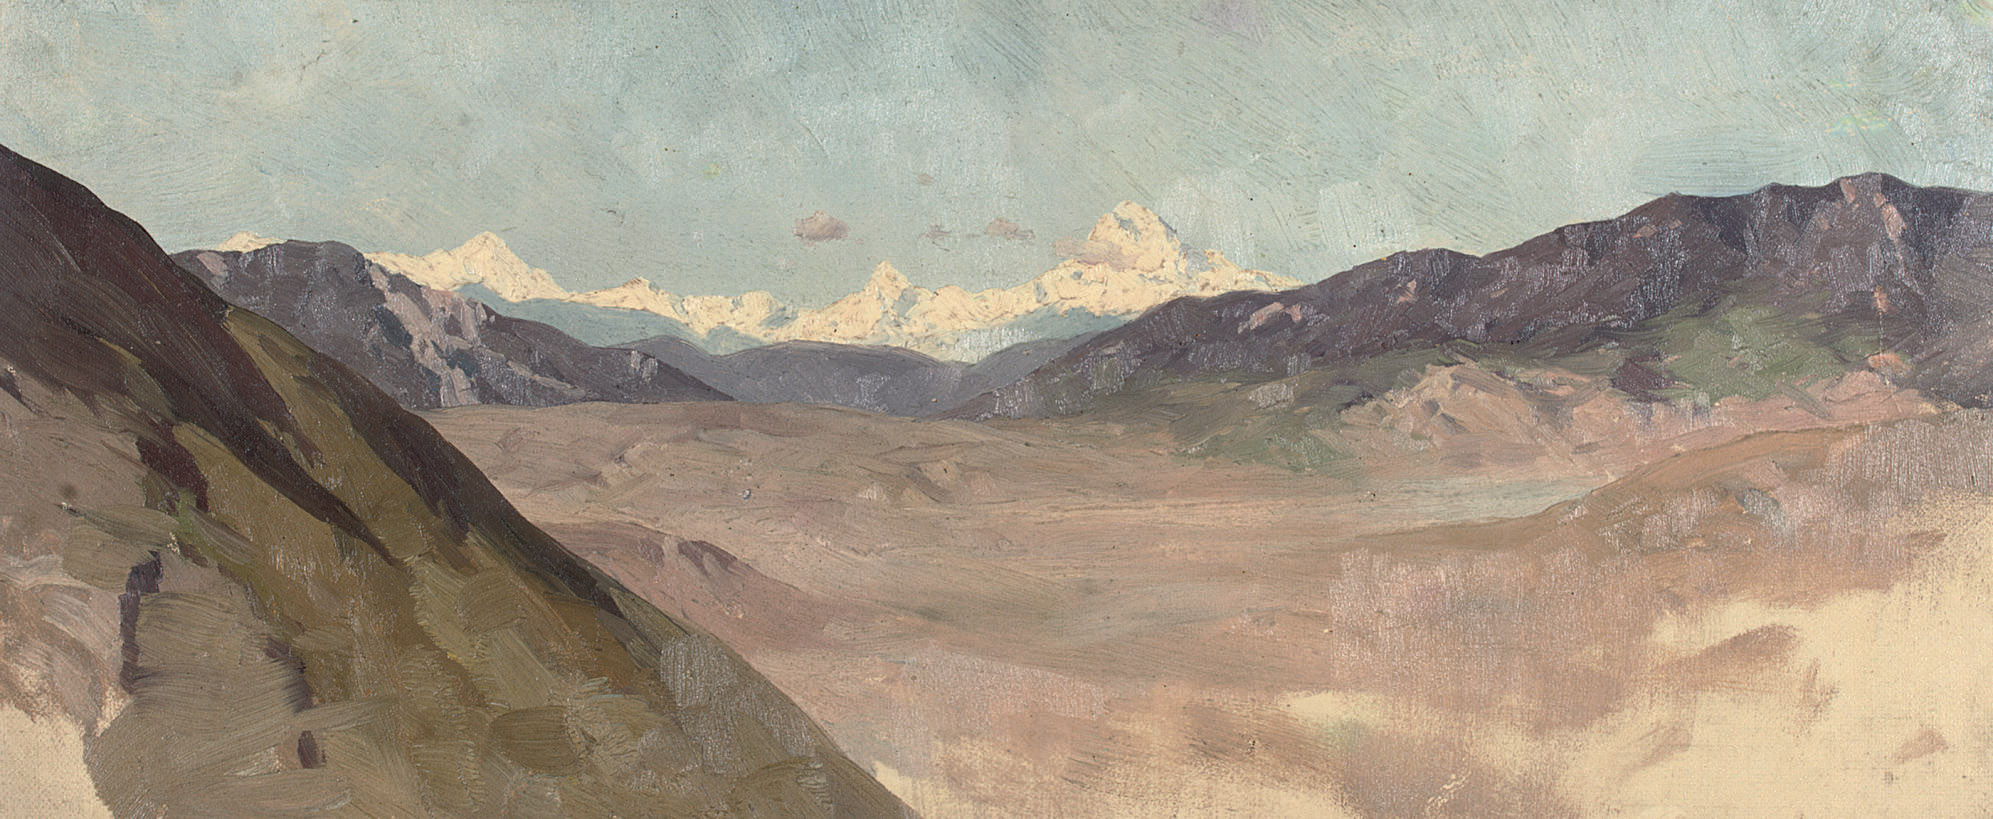 Study of a rugged landscape